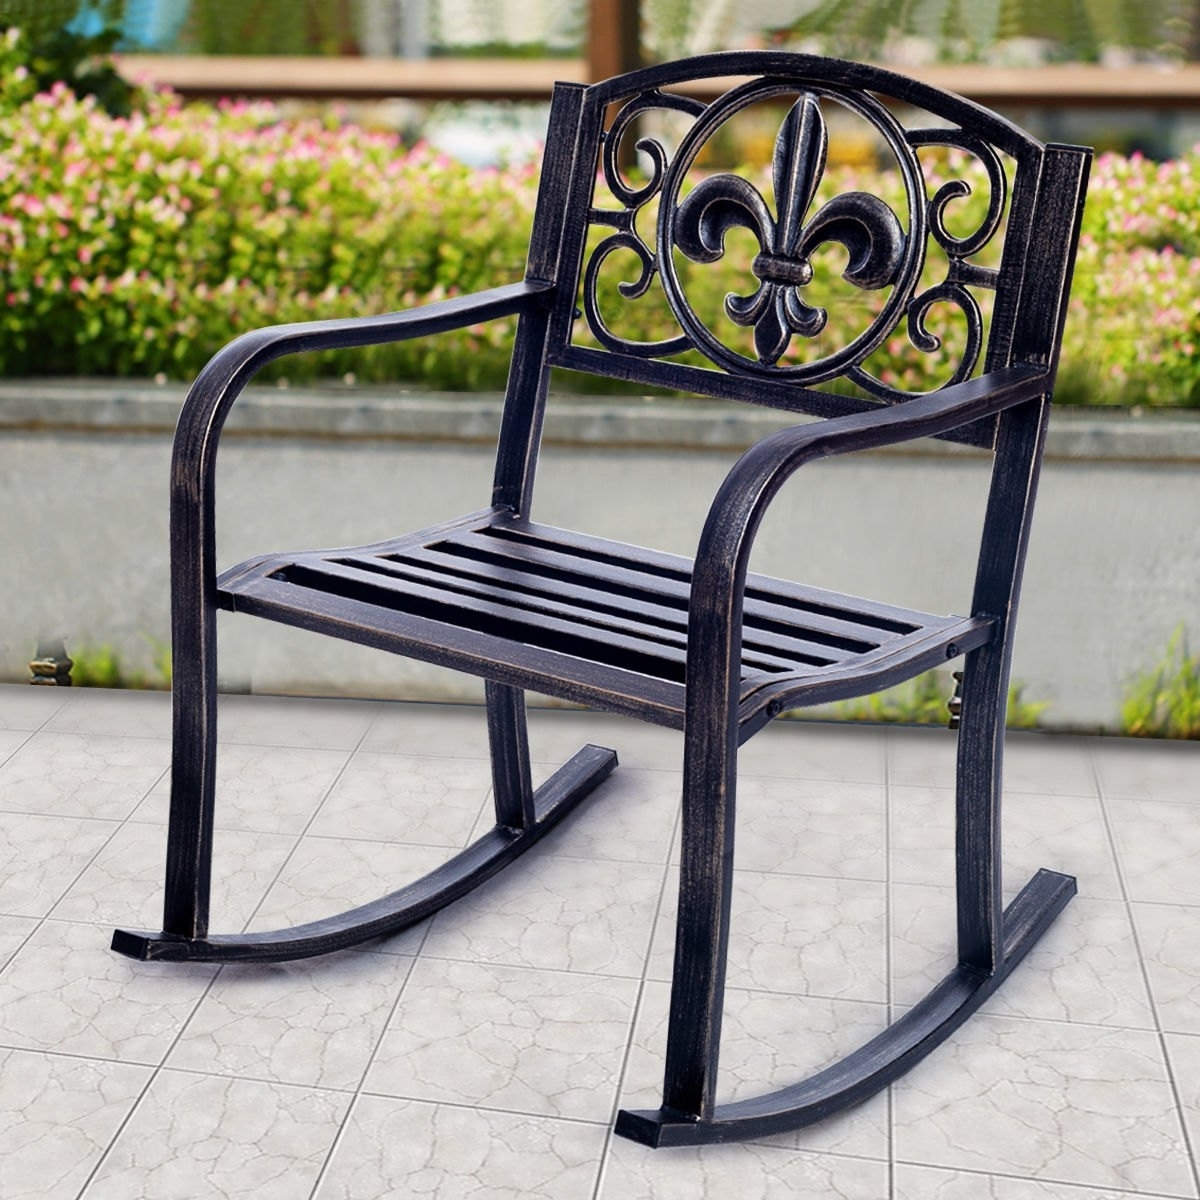 2018 Outdoor Patio Metal Rocking Chairs Regarding Costway: Costway Patio Metal Rocking Chair Porch Seat Deck Outdoor (View 6 of 20)